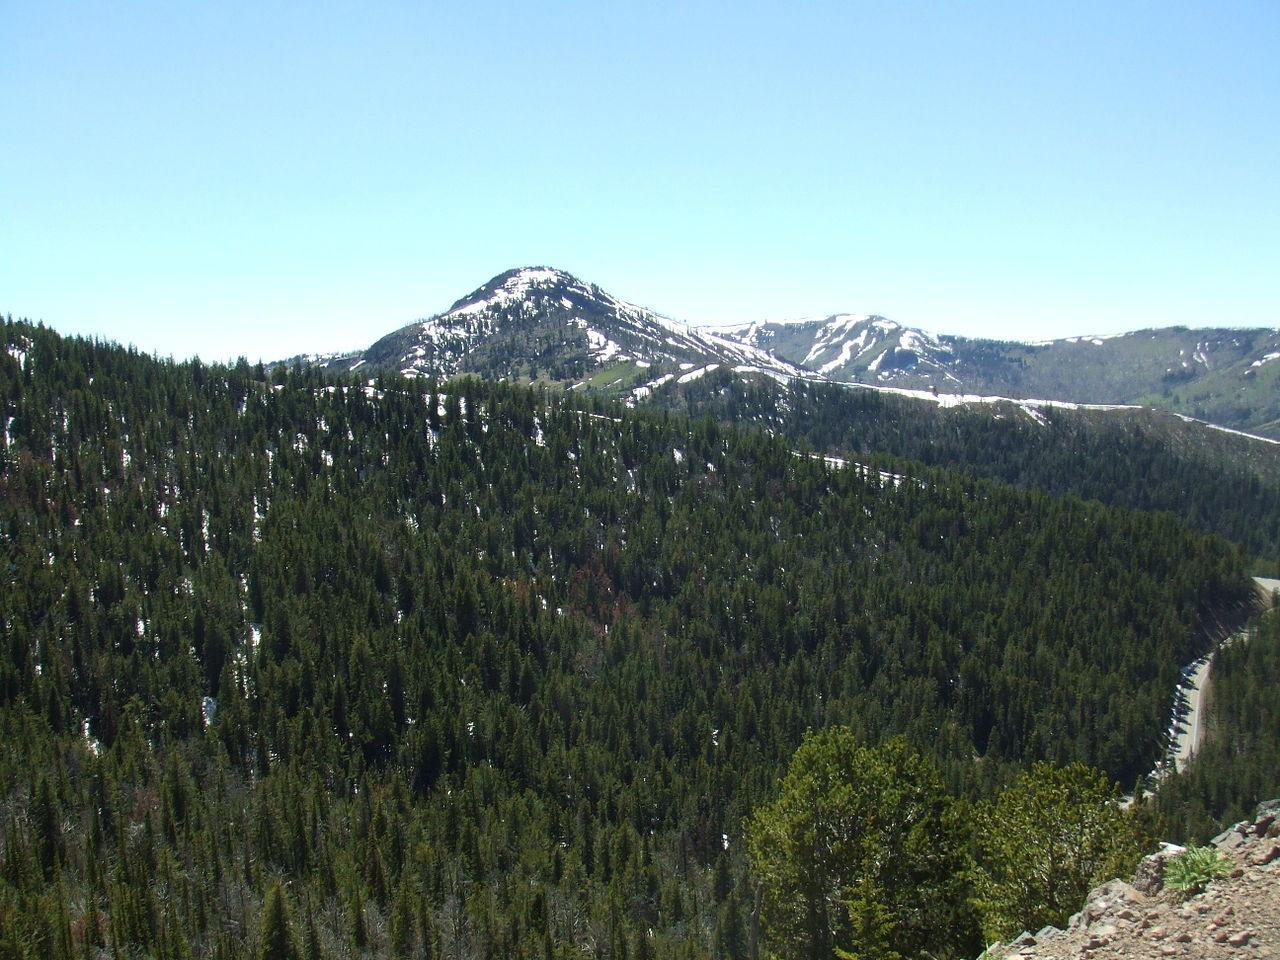 Dunraven Peak Viewed From Mount Washburn Trail courtesy of Thomson200↗